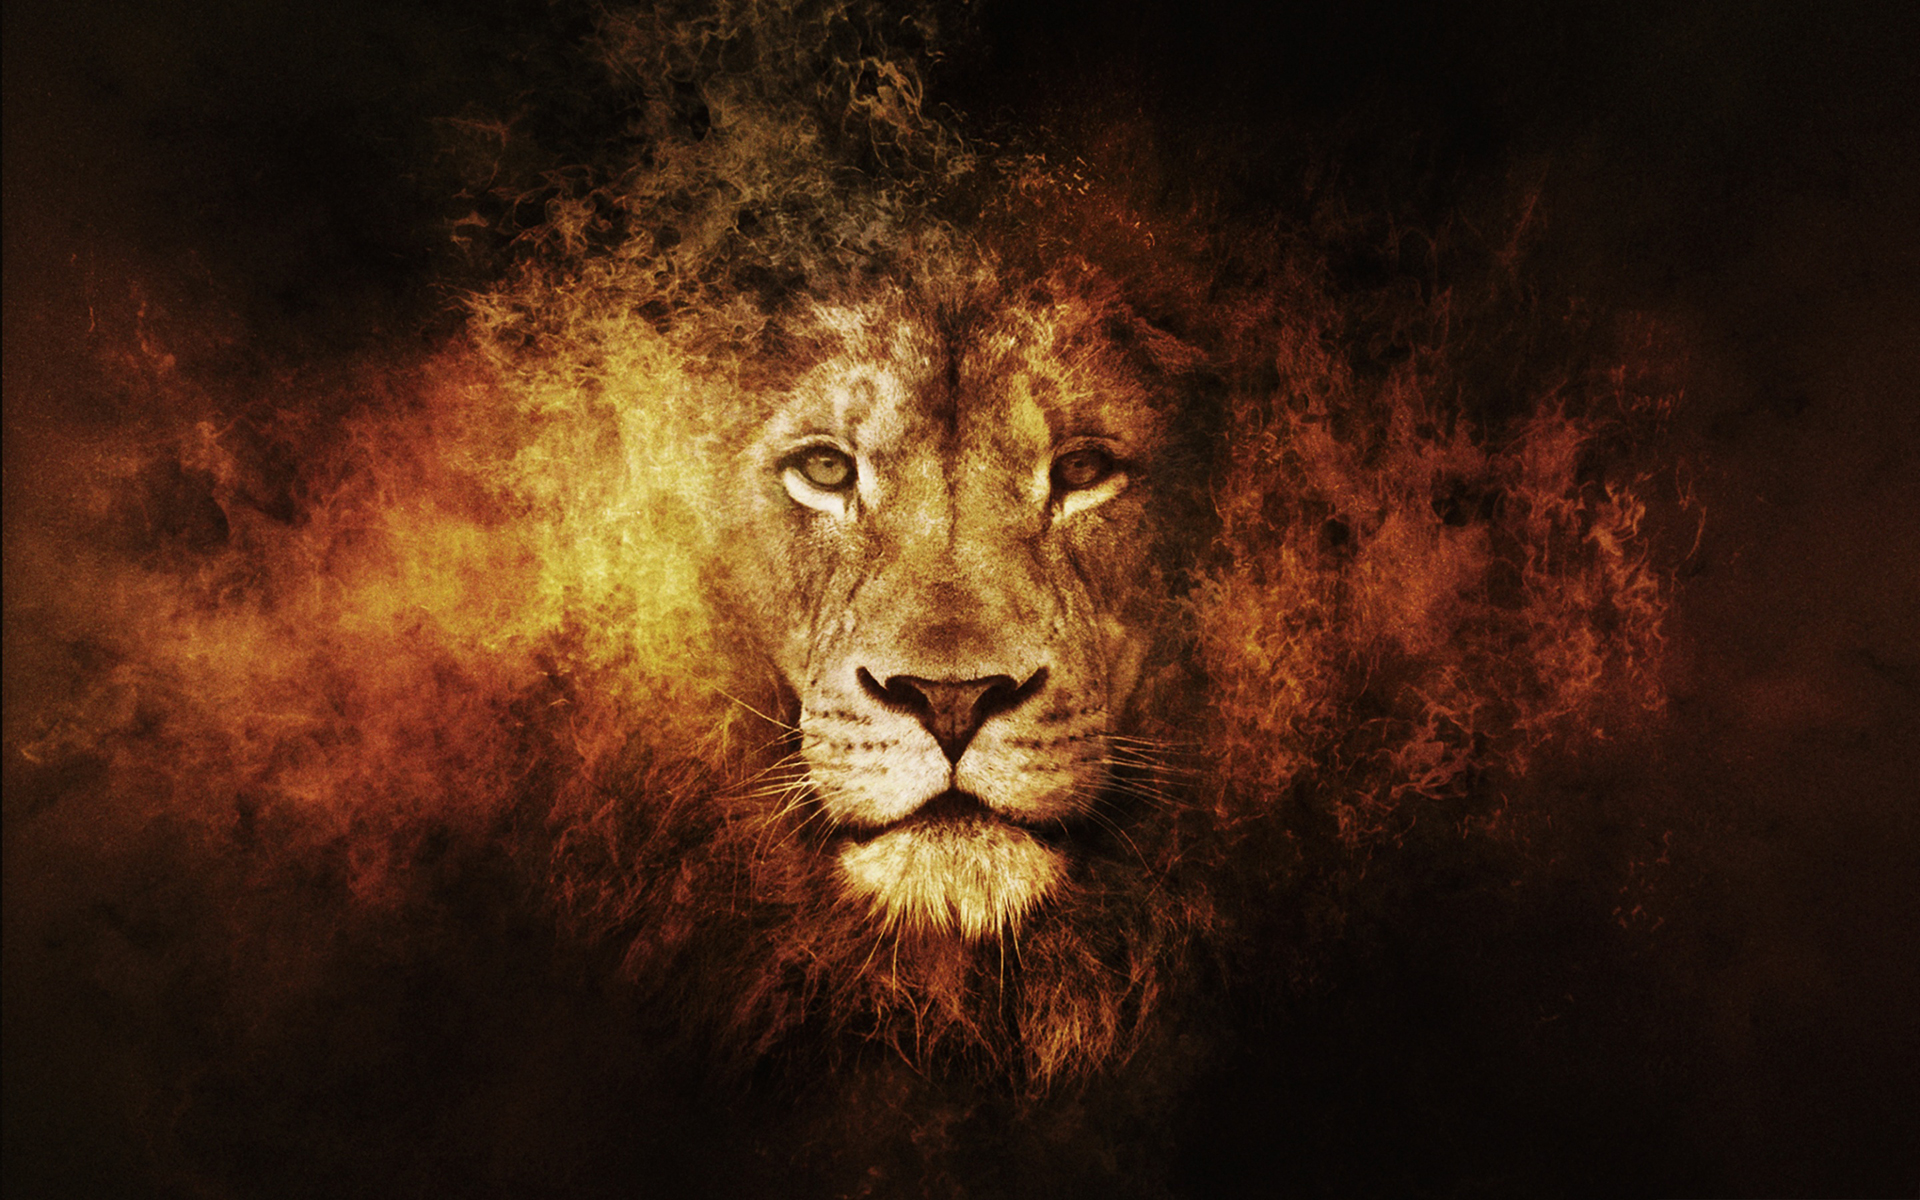 Lion fire art